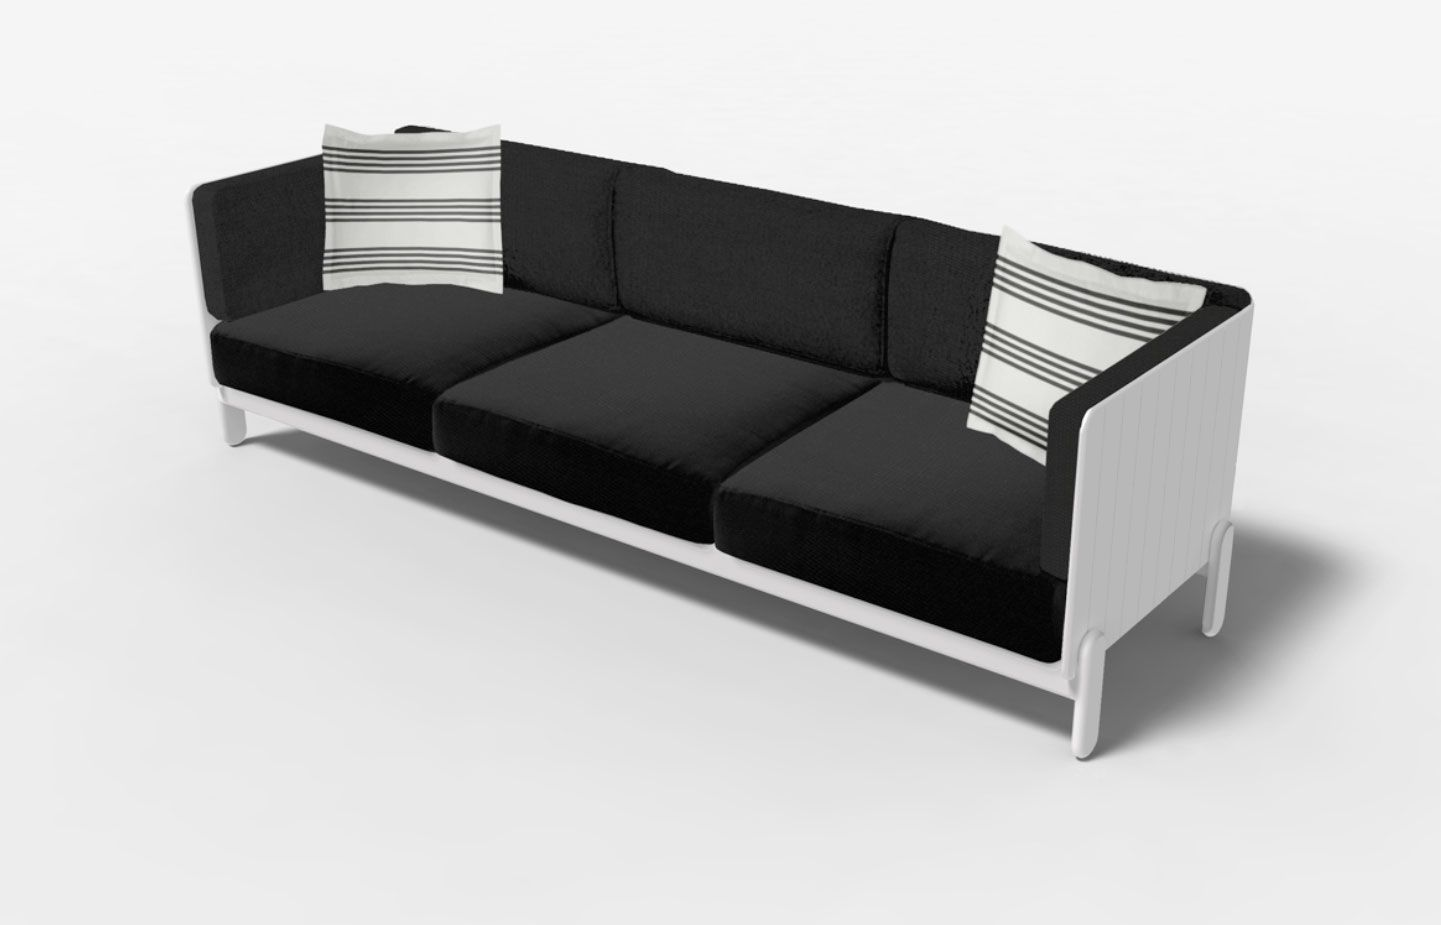 Part Of Loll Designs Sunnyside Collection Of Modern Outdoor Patio Furniture Loll S First Upholstered Line This Outdoor So Furniture Furniture Design Outdoor Sofa